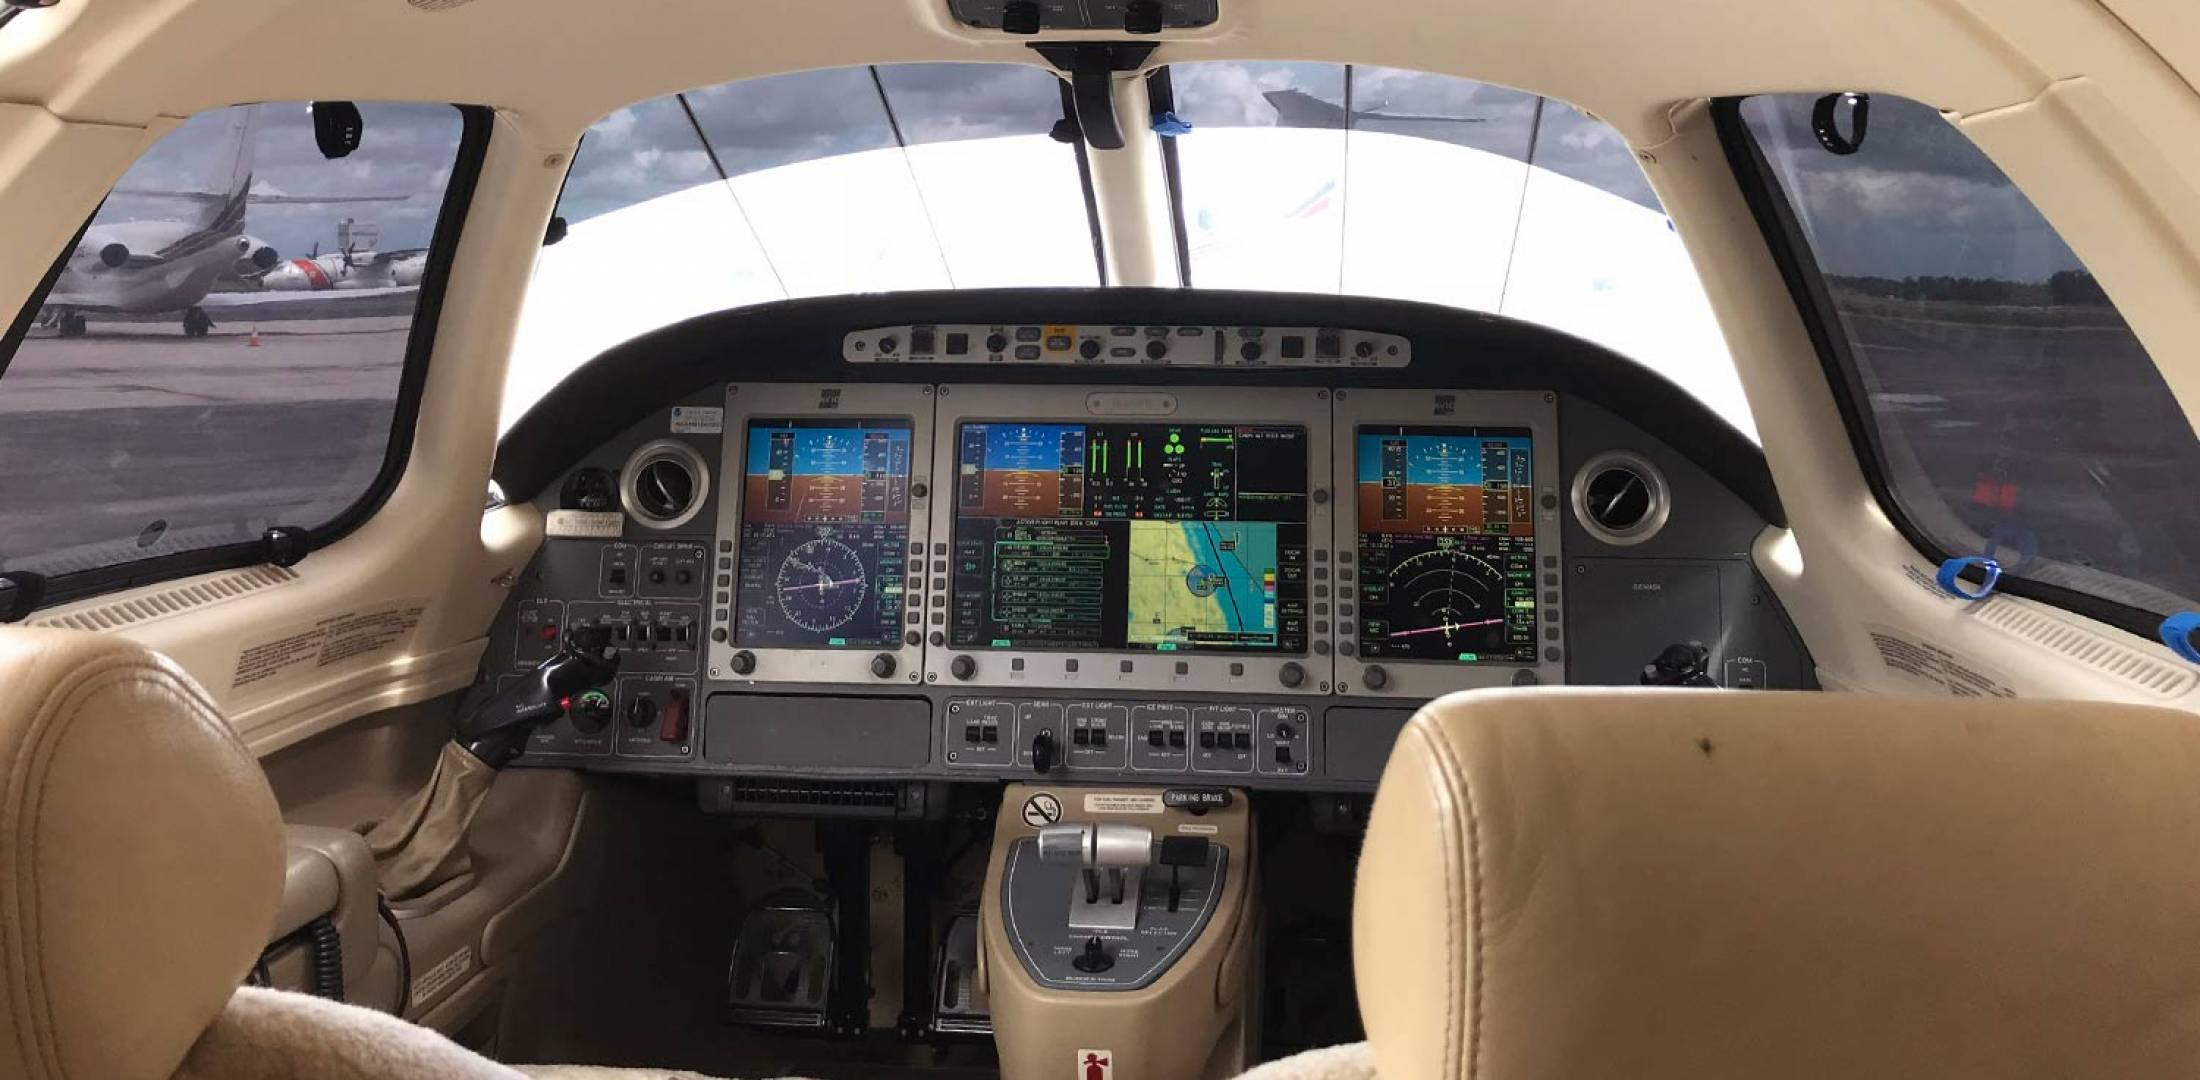 Engineer and Eclipse owner-pilot Kevin Duggan has a product designed to cool your jets.